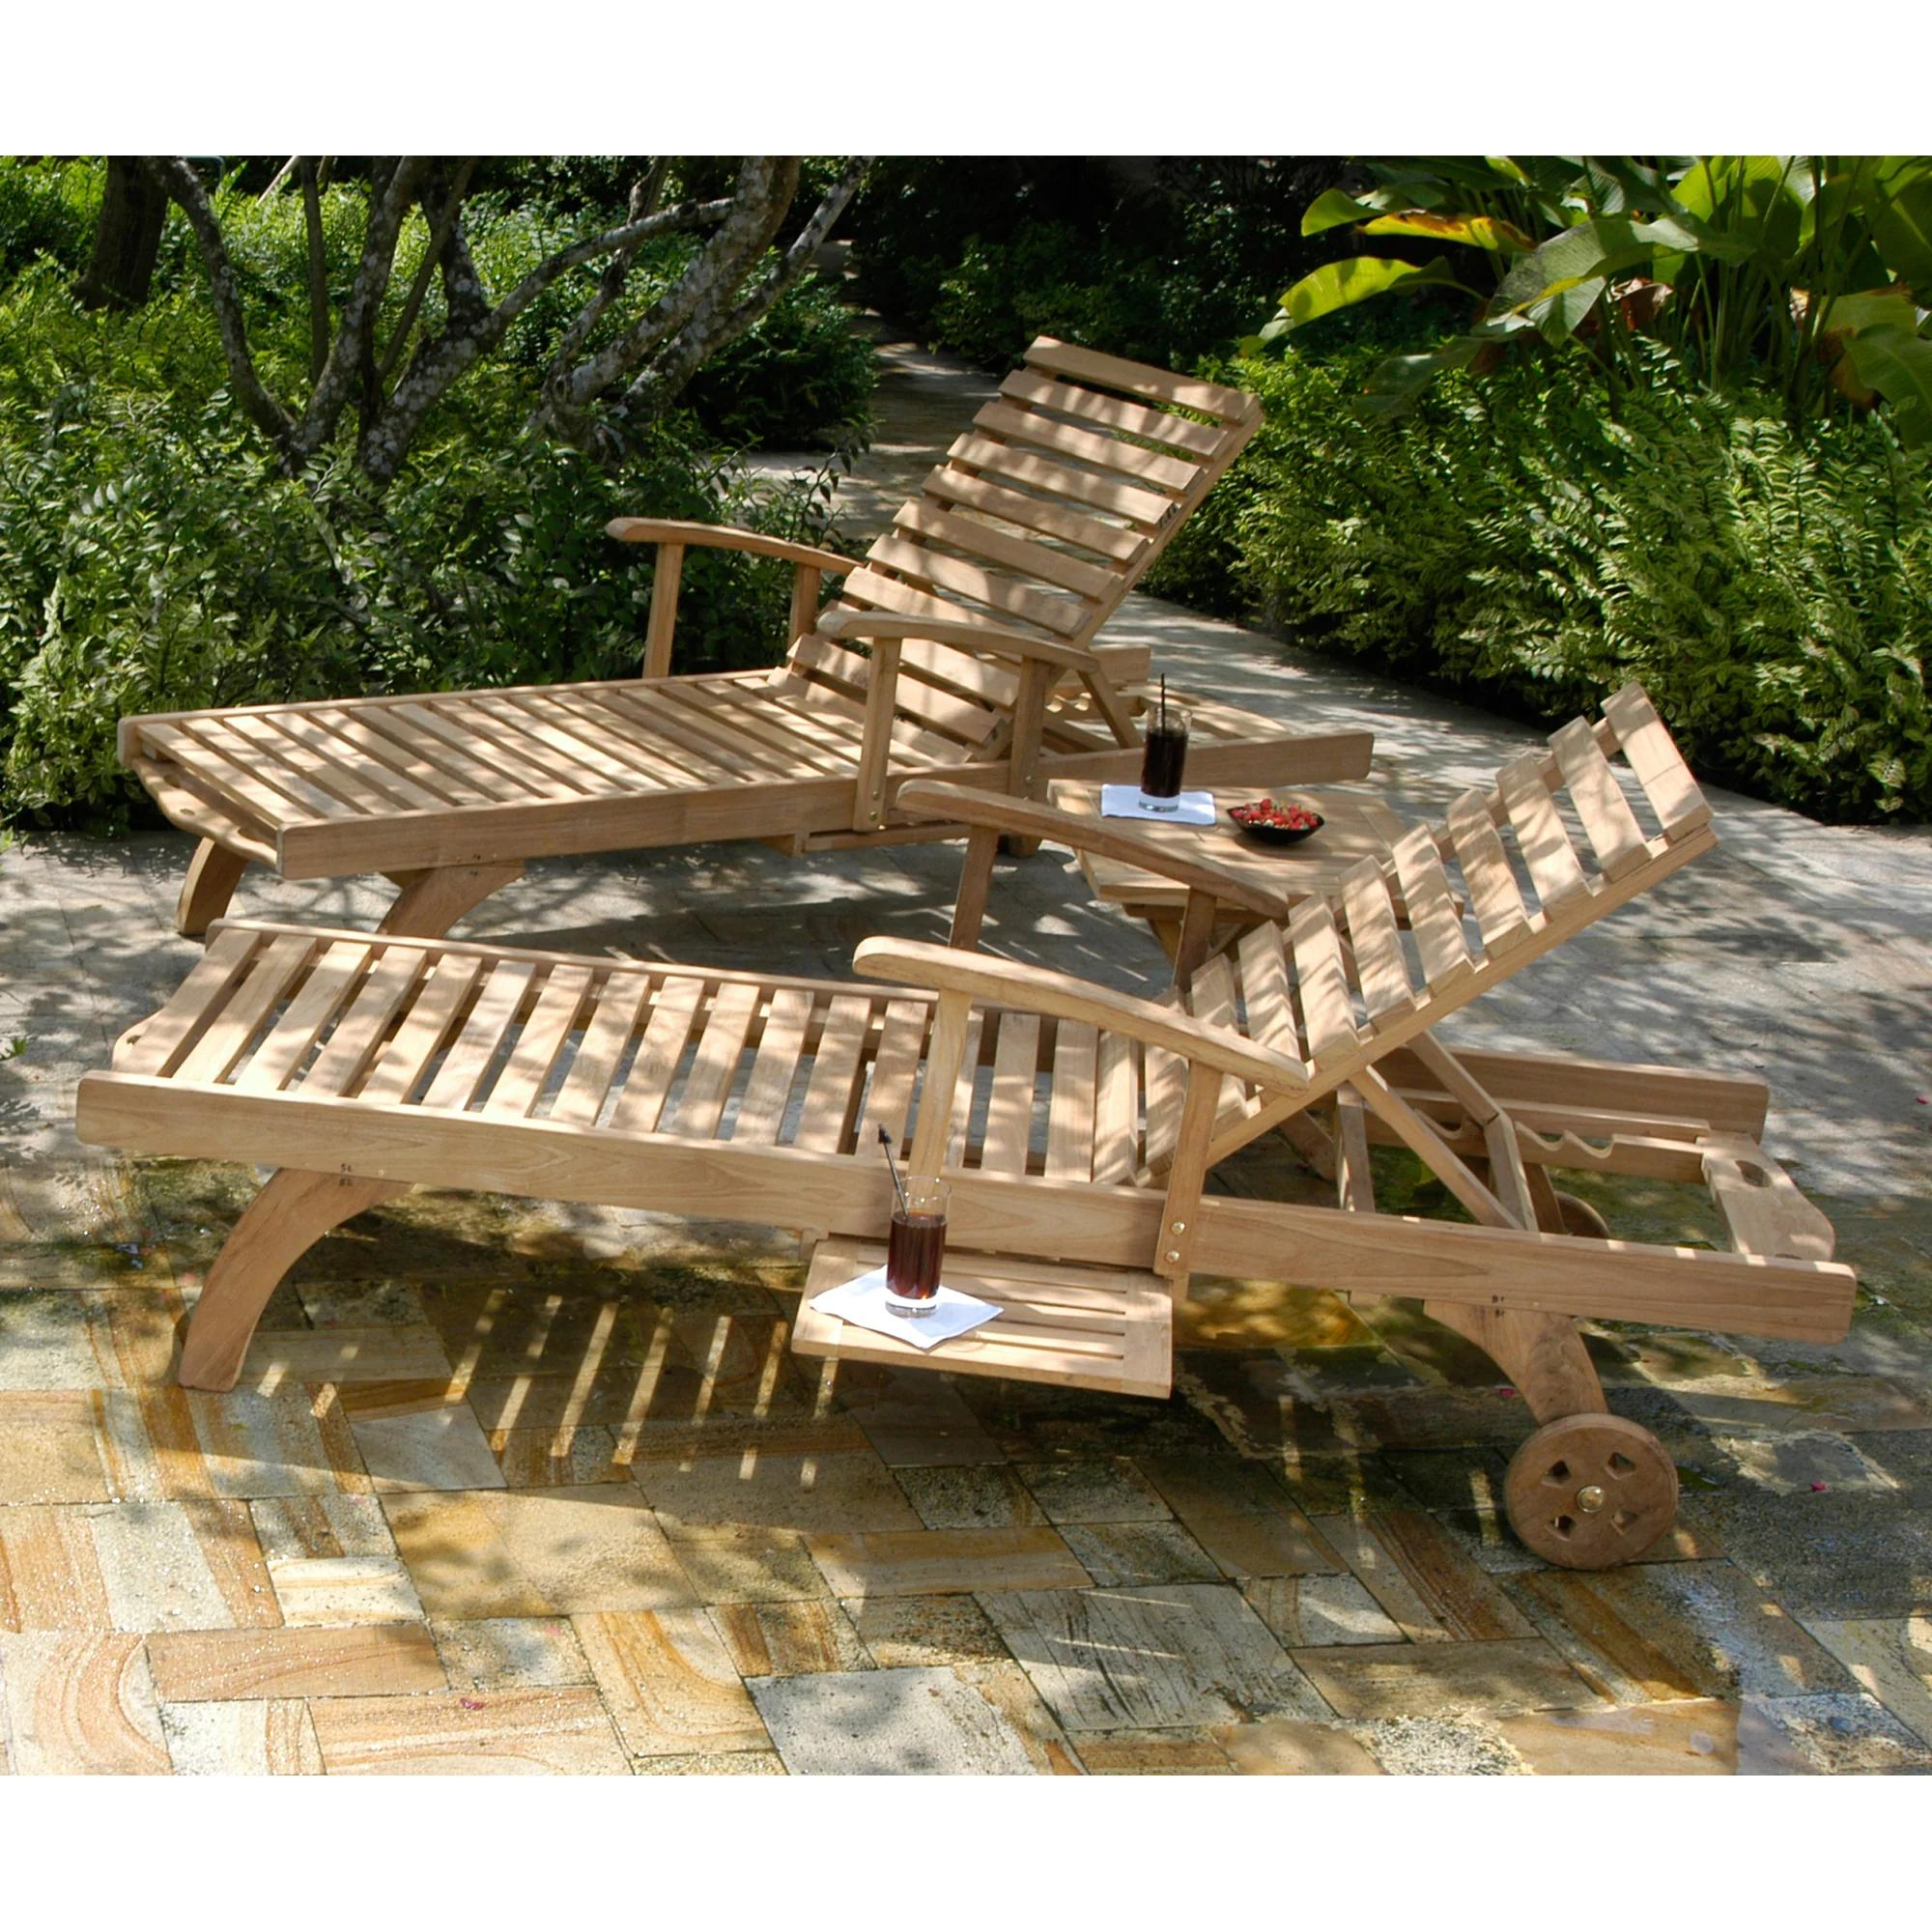 Chic Teak Bahama Teak Wood Pool and Patio Lounger with Pull Out Side Table